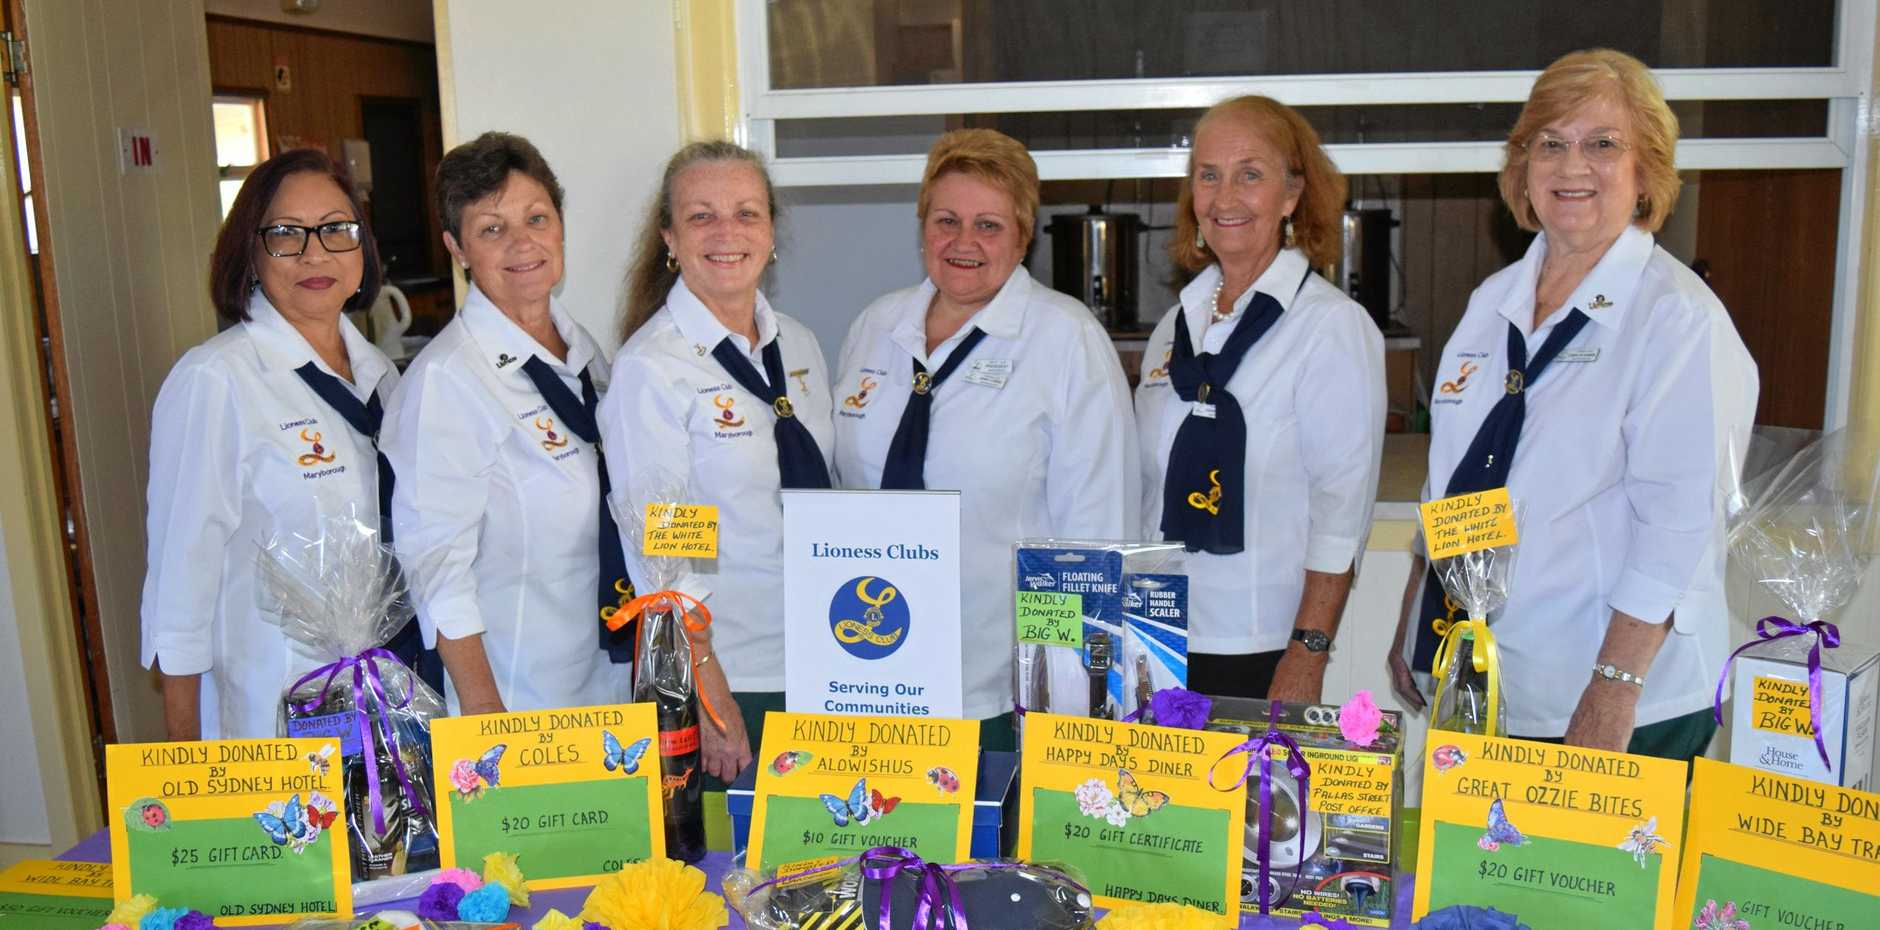 Maryborough Lioness members (from left) Pilar Wyatt, Jacinta Mathiesen, Jillian Alston, Jenny Loring, Joanne Jones and Carolyn Hansen show off some of the prizes for their Swing into Spring fundraiser.